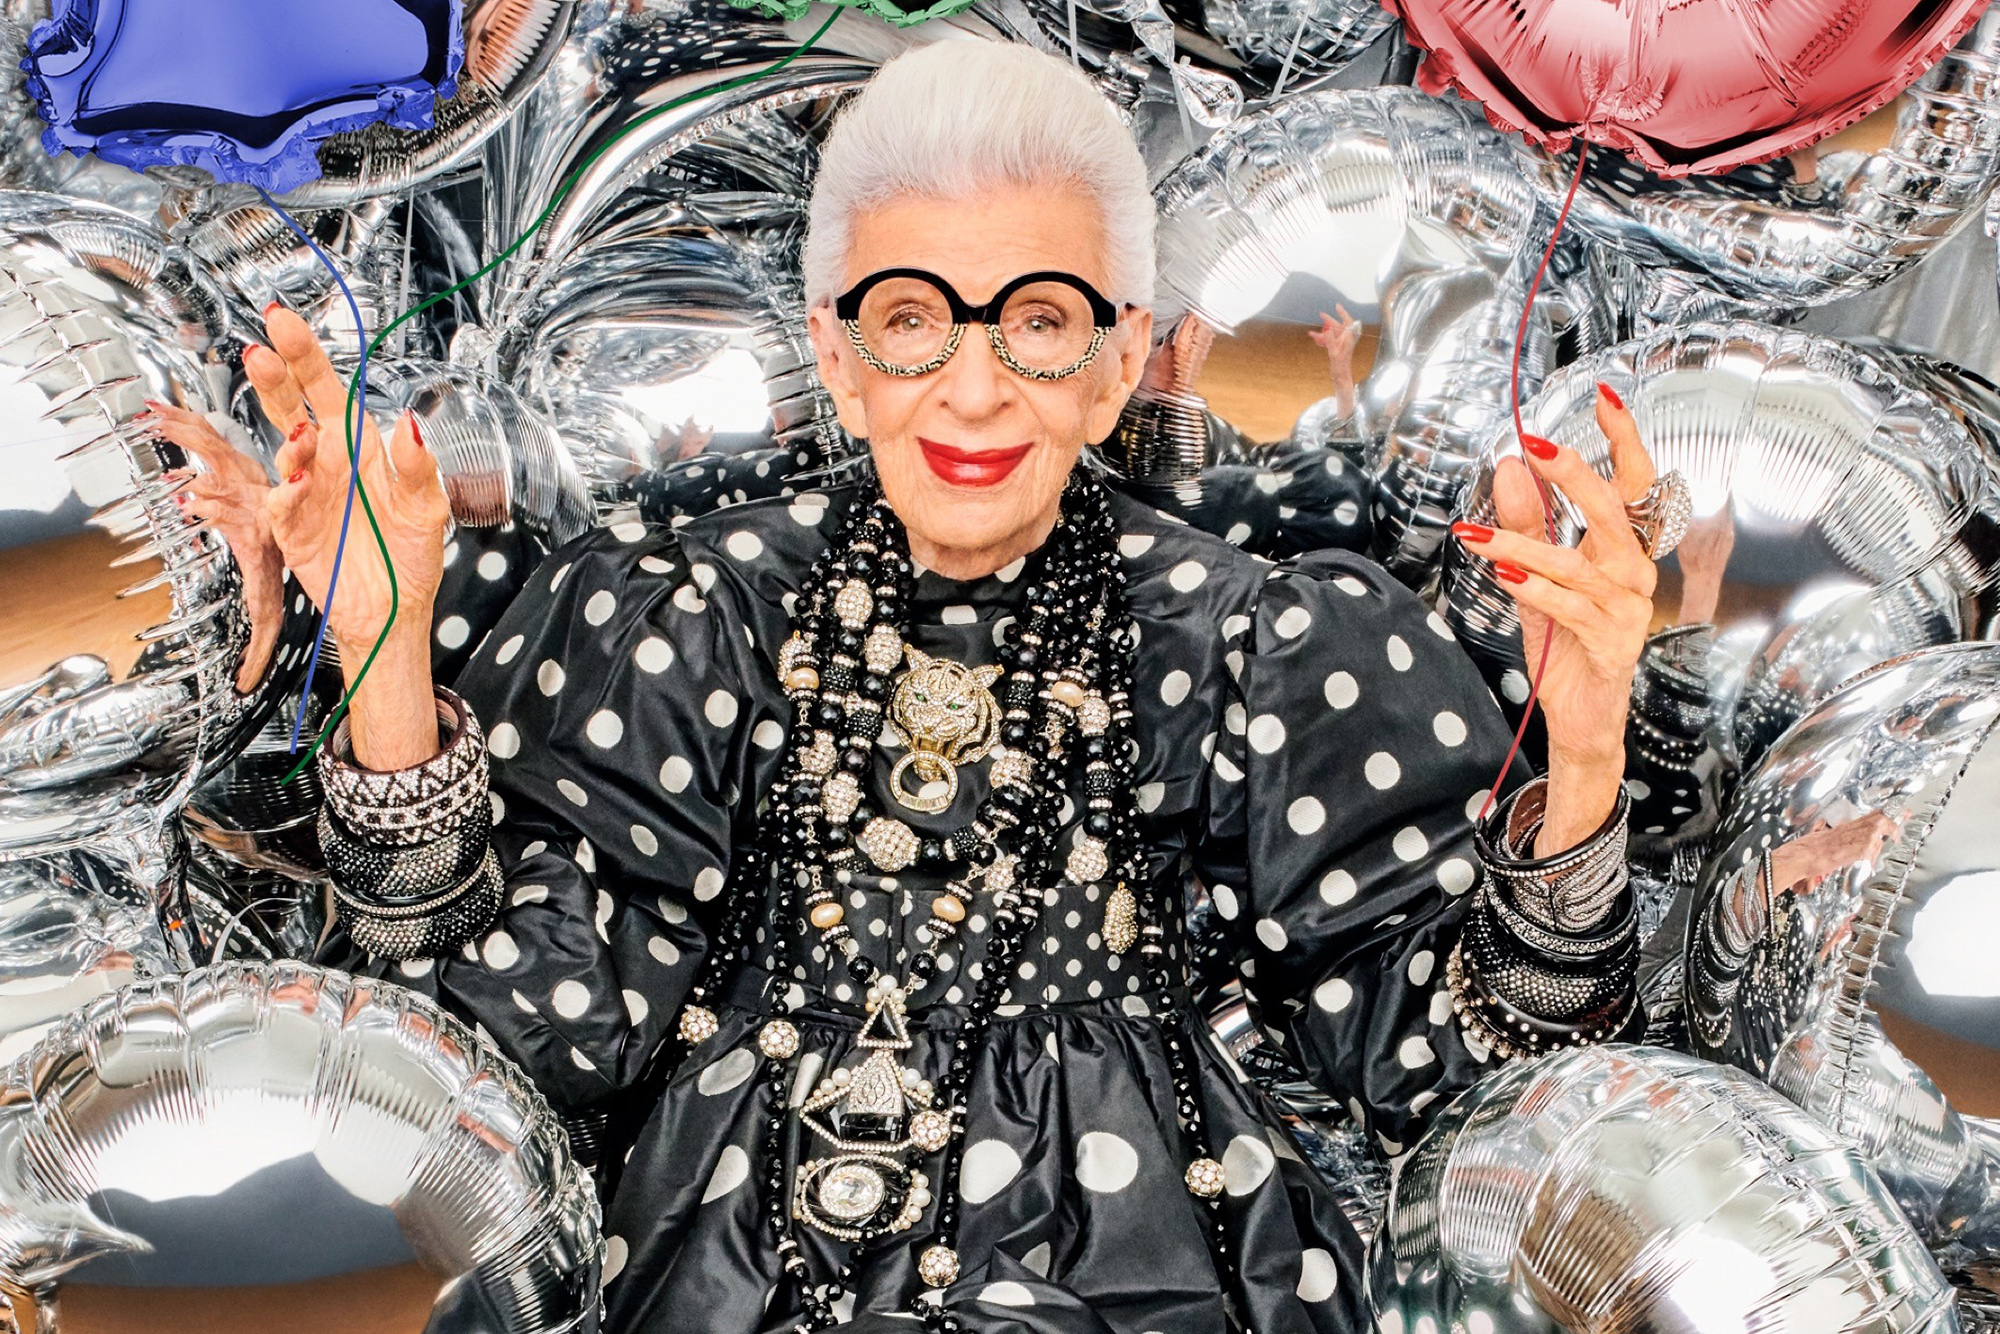 Iris Apfel on style, plastic surgery and turning 100